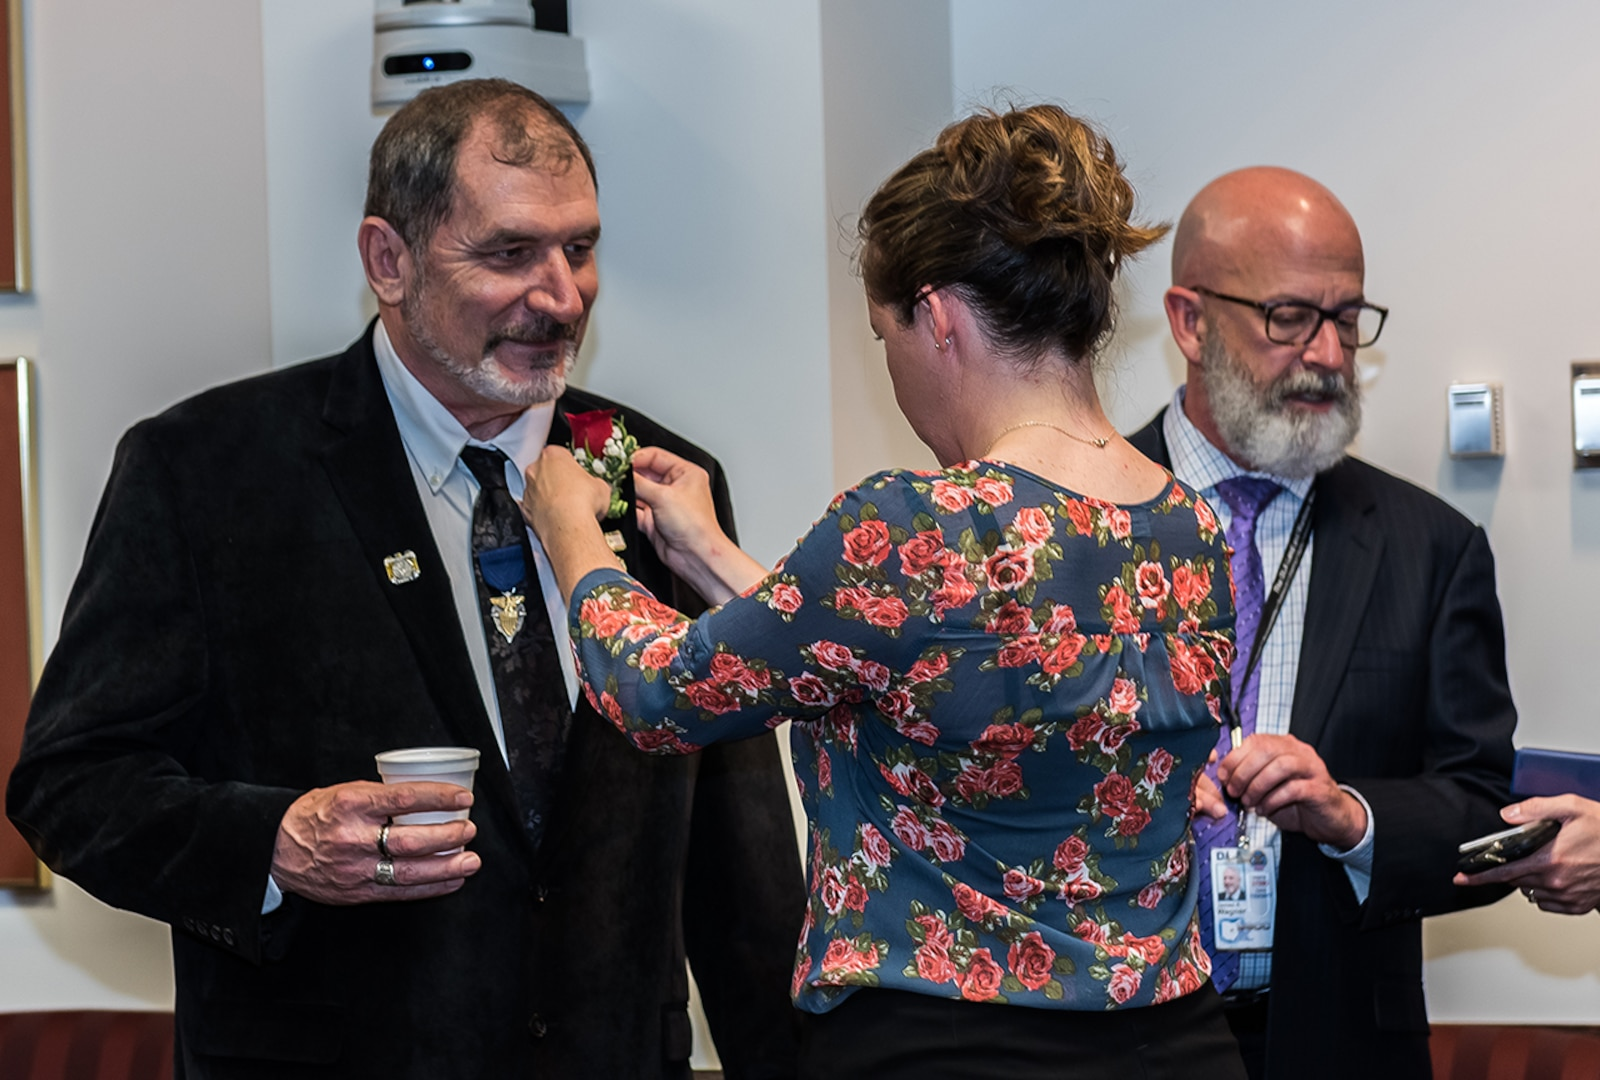 Michael Souders gets a flower pinned on by Protocol Officer Kristin Molinaro before the 2017 DLA Land and Maritime Hall of Fame induction ceremony begins.